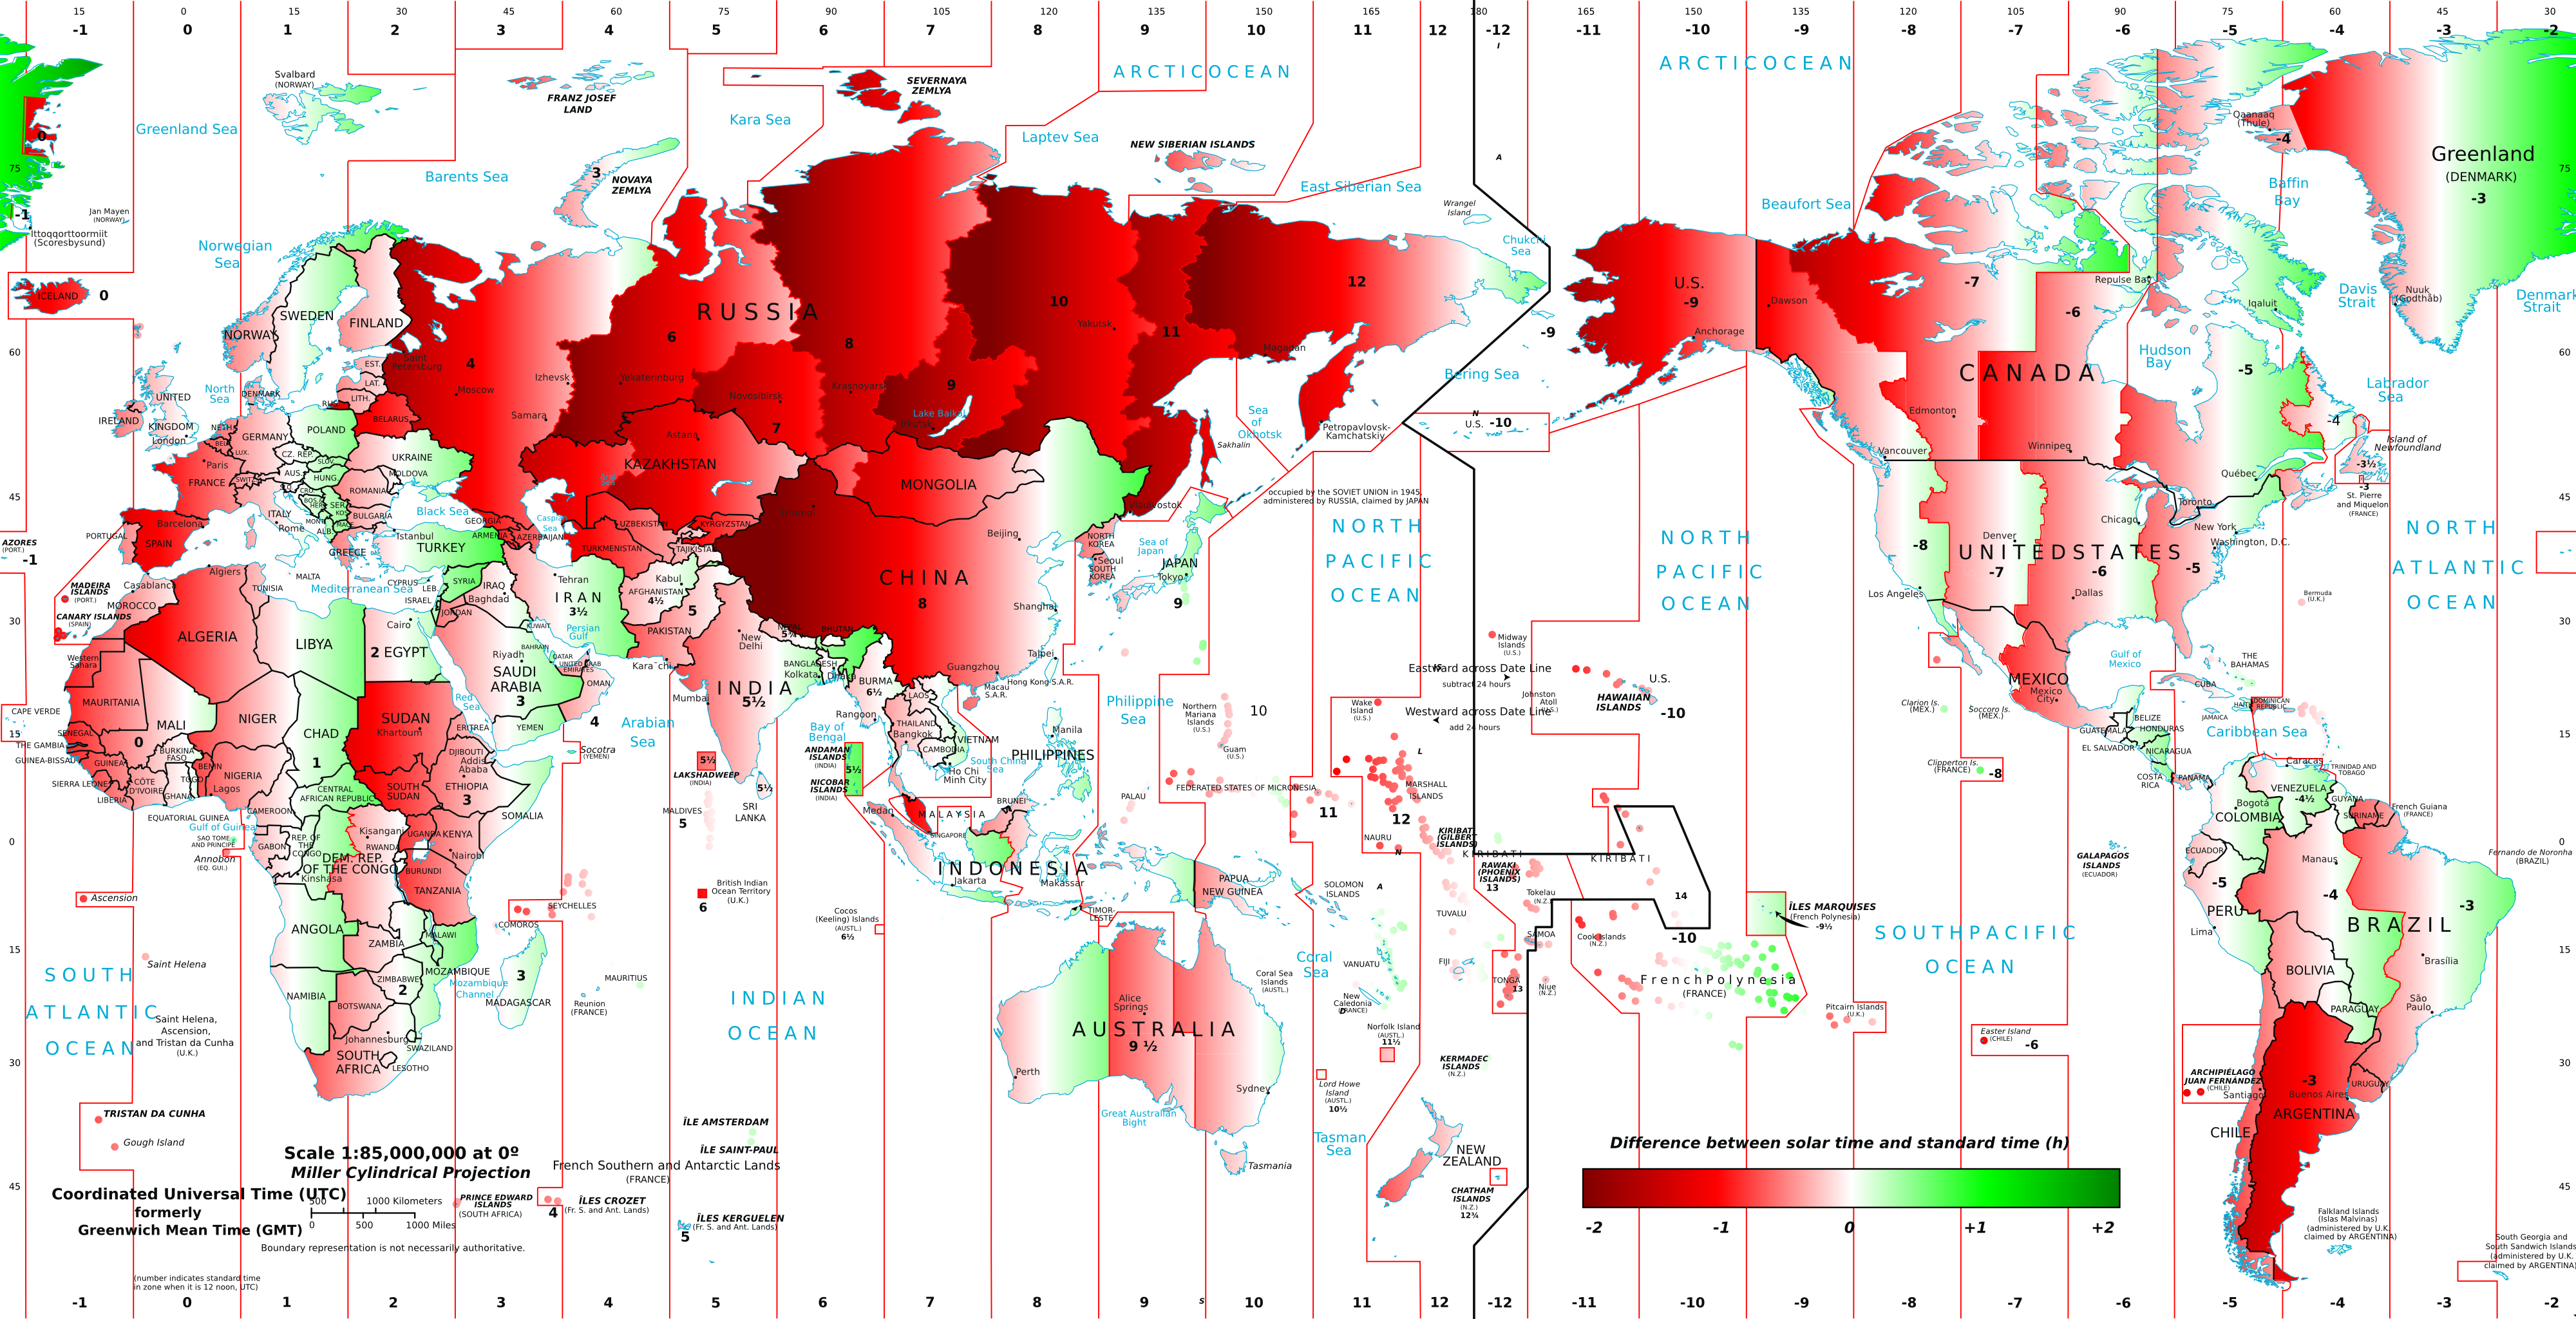 Why spaniards have dinner so late a map of the difference between why spaniards have dinner so late a map of the difference between solar time and clock time around the world gumiabroncs Gallery